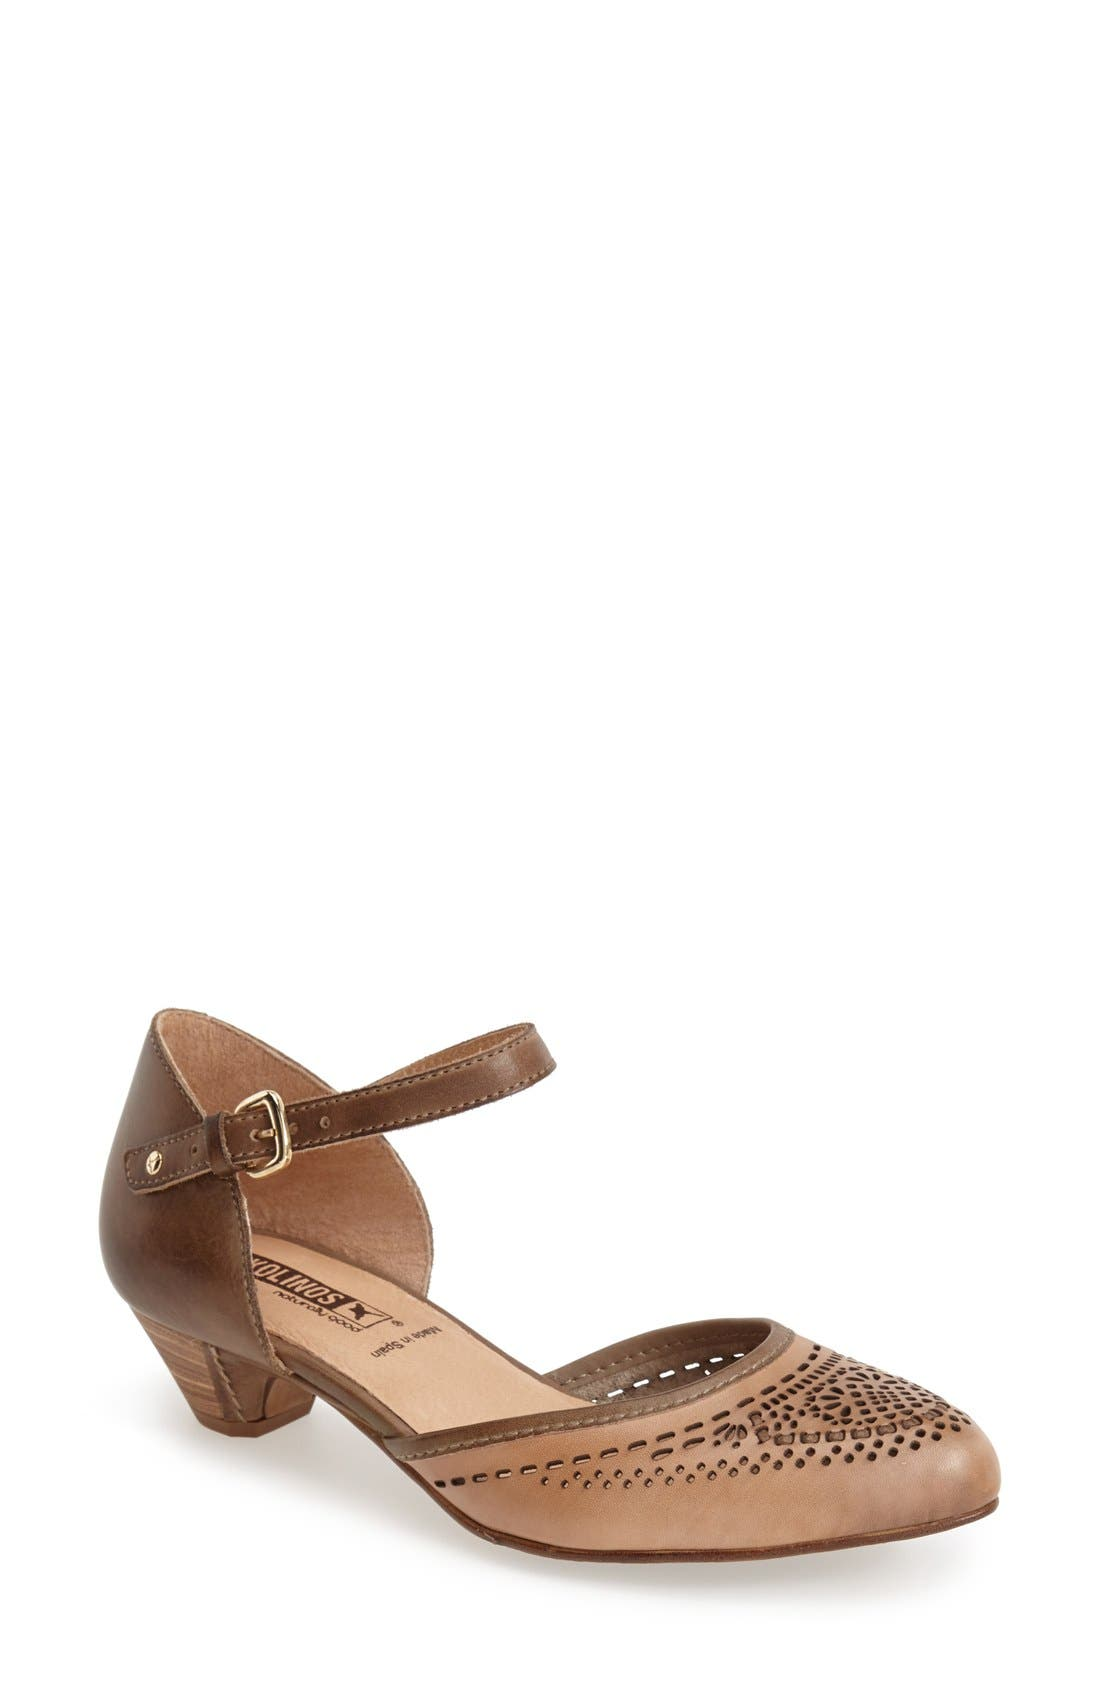 'Elba' Perforated Leather Ankle Strap Sandal,                             Main thumbnail 1, color,